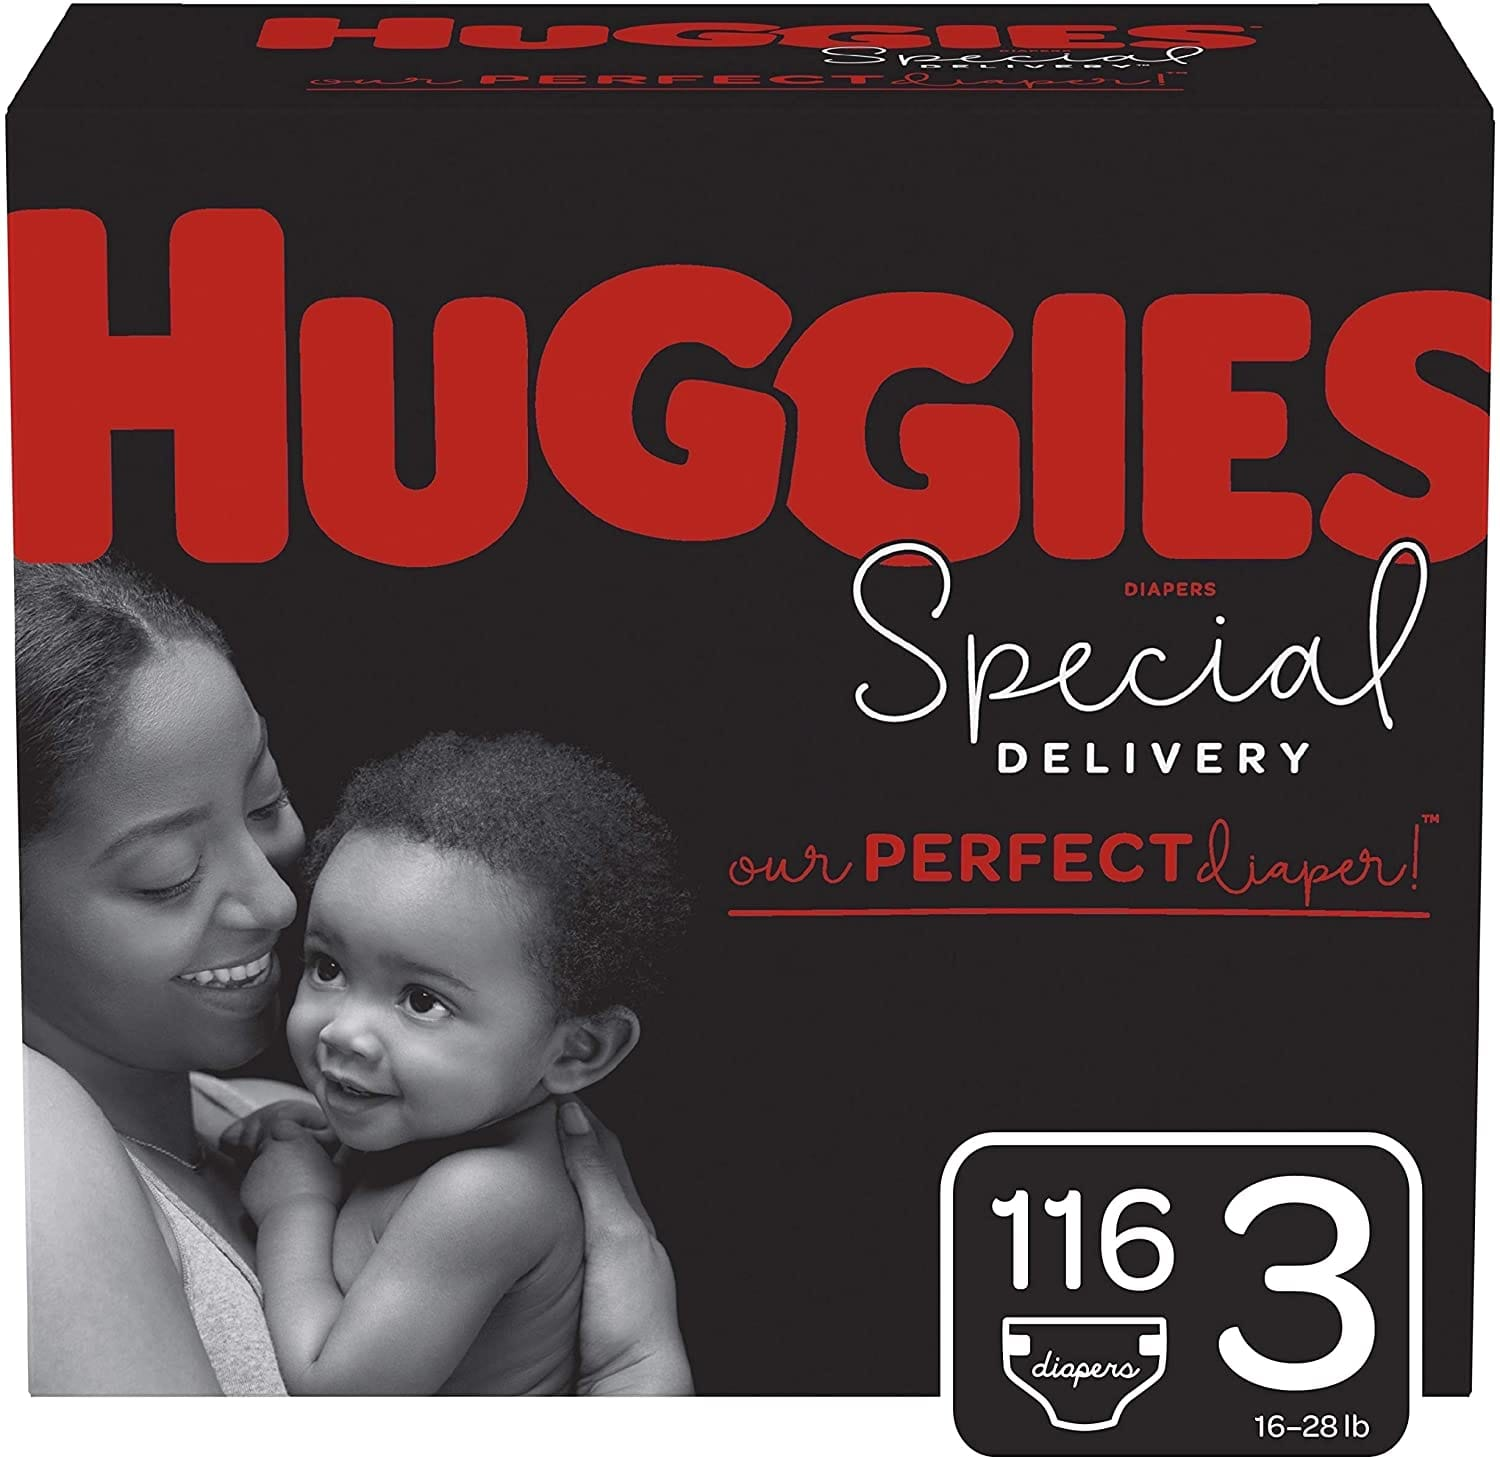 Huggies Special Delivery Extra $6 or $4 on top of S&S